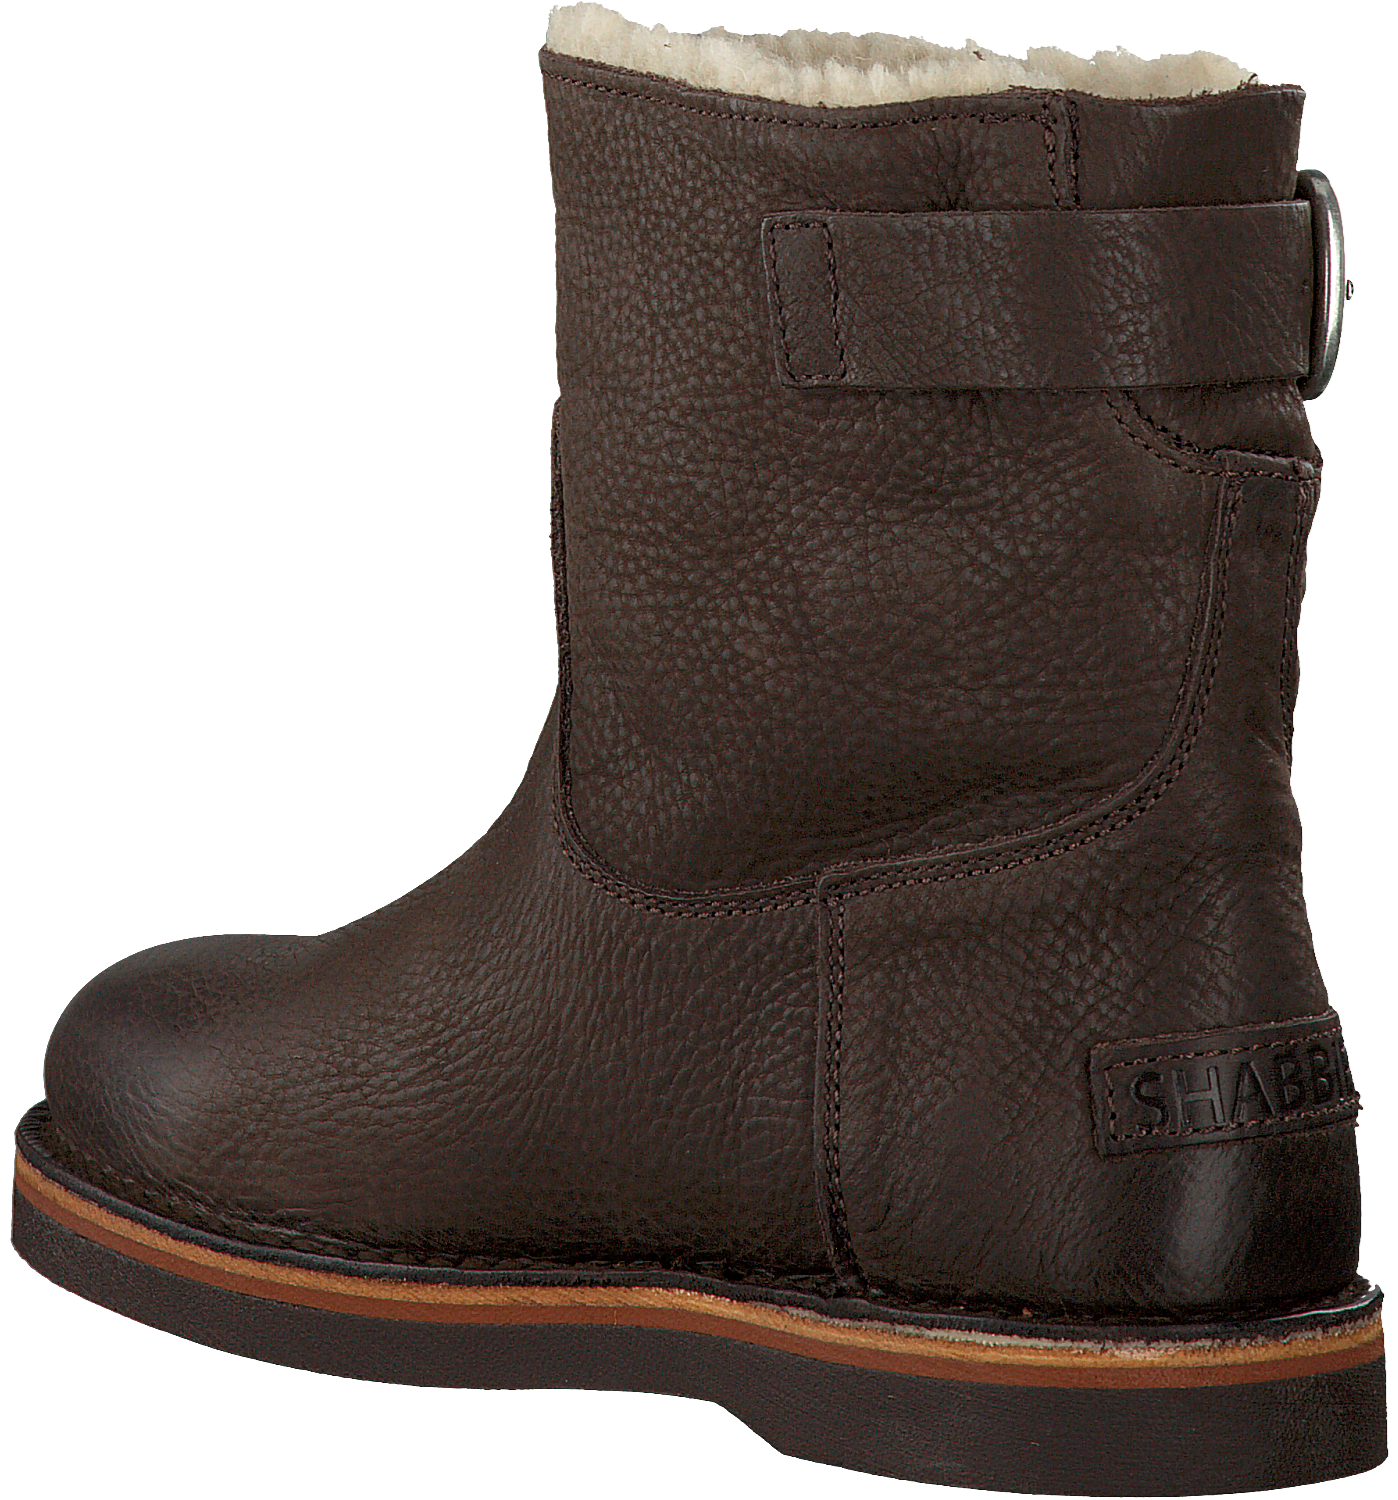 Shabbies Brun Bottines 181020054 ZPqjy